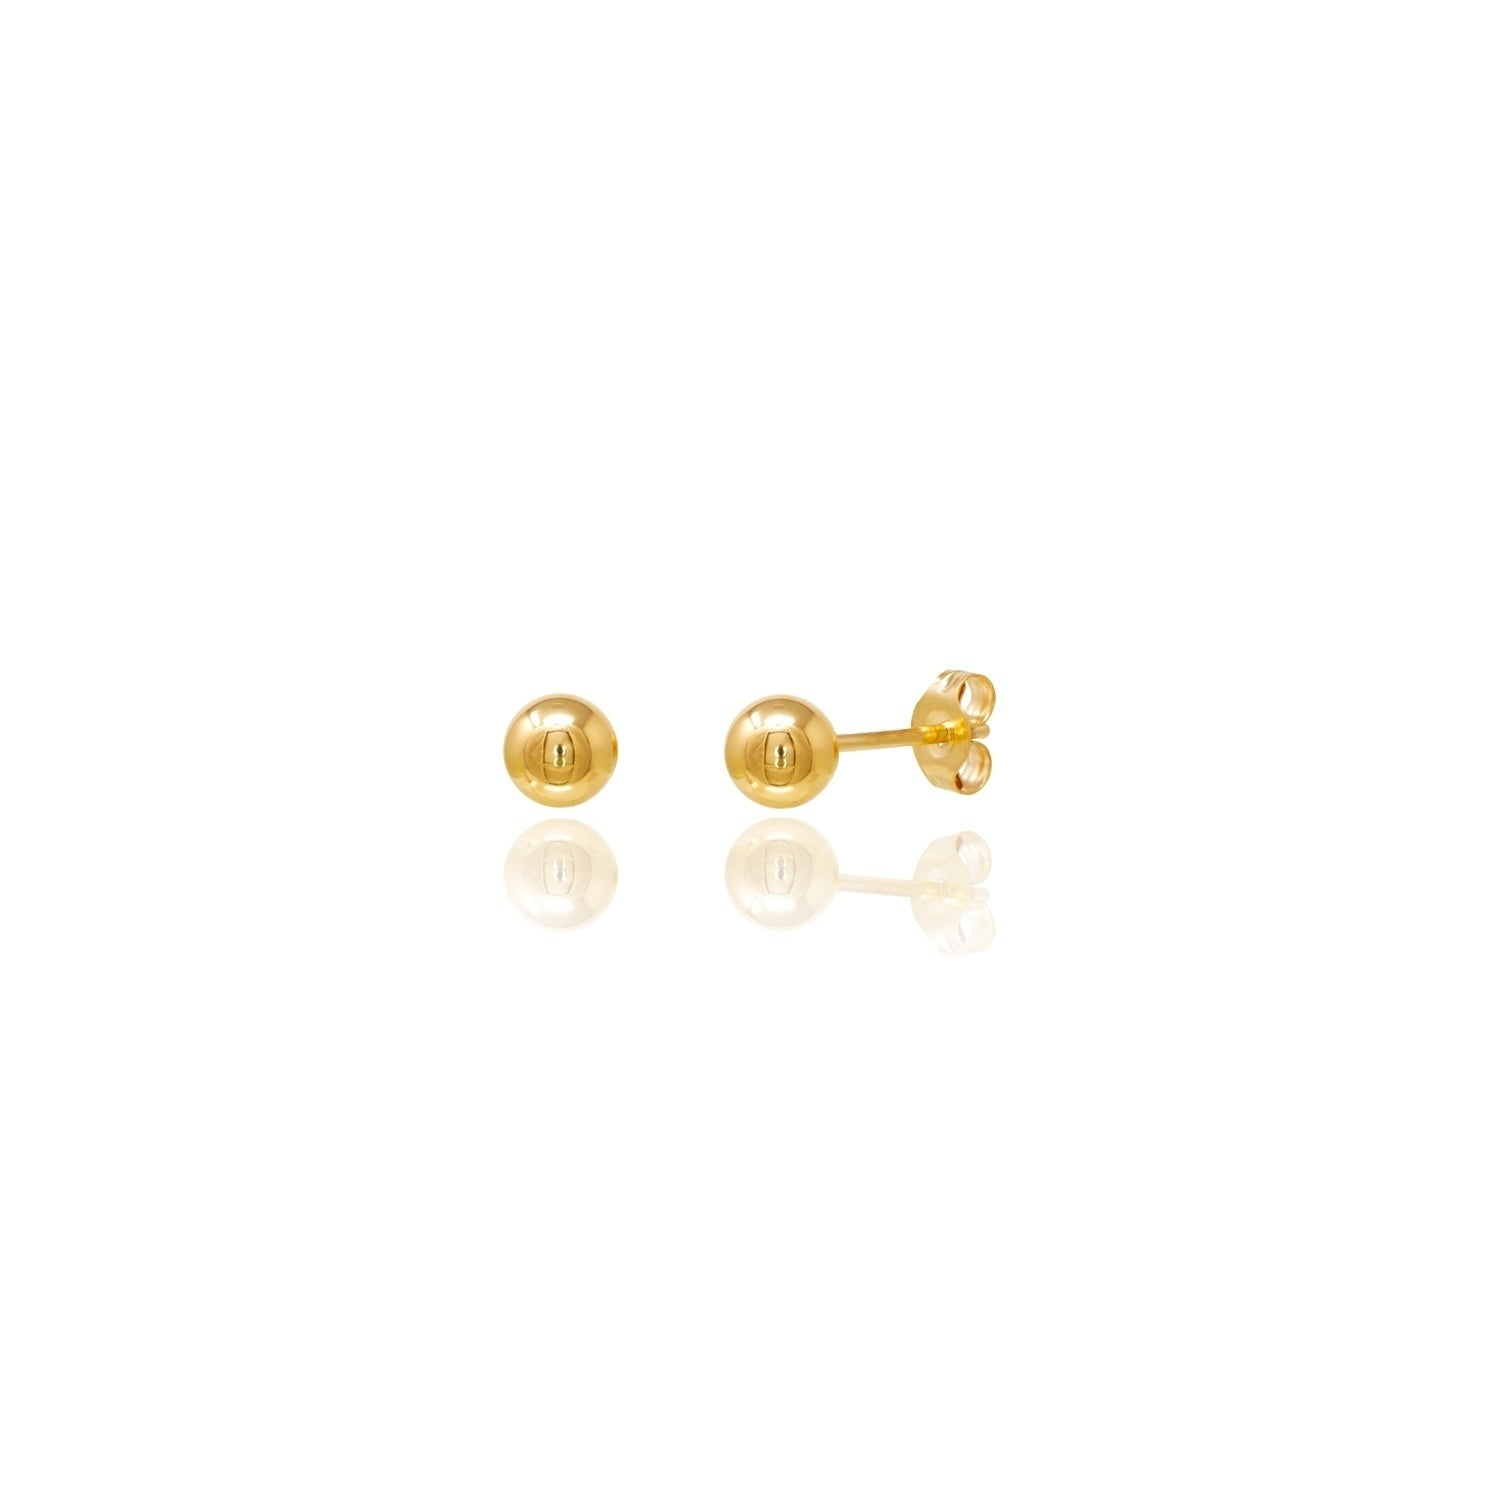 b366801a6 Shop 14kt Yellow Gold Ball Stud Earrings - Free Shipping On Orders Over $45  - Overstock - 12875928